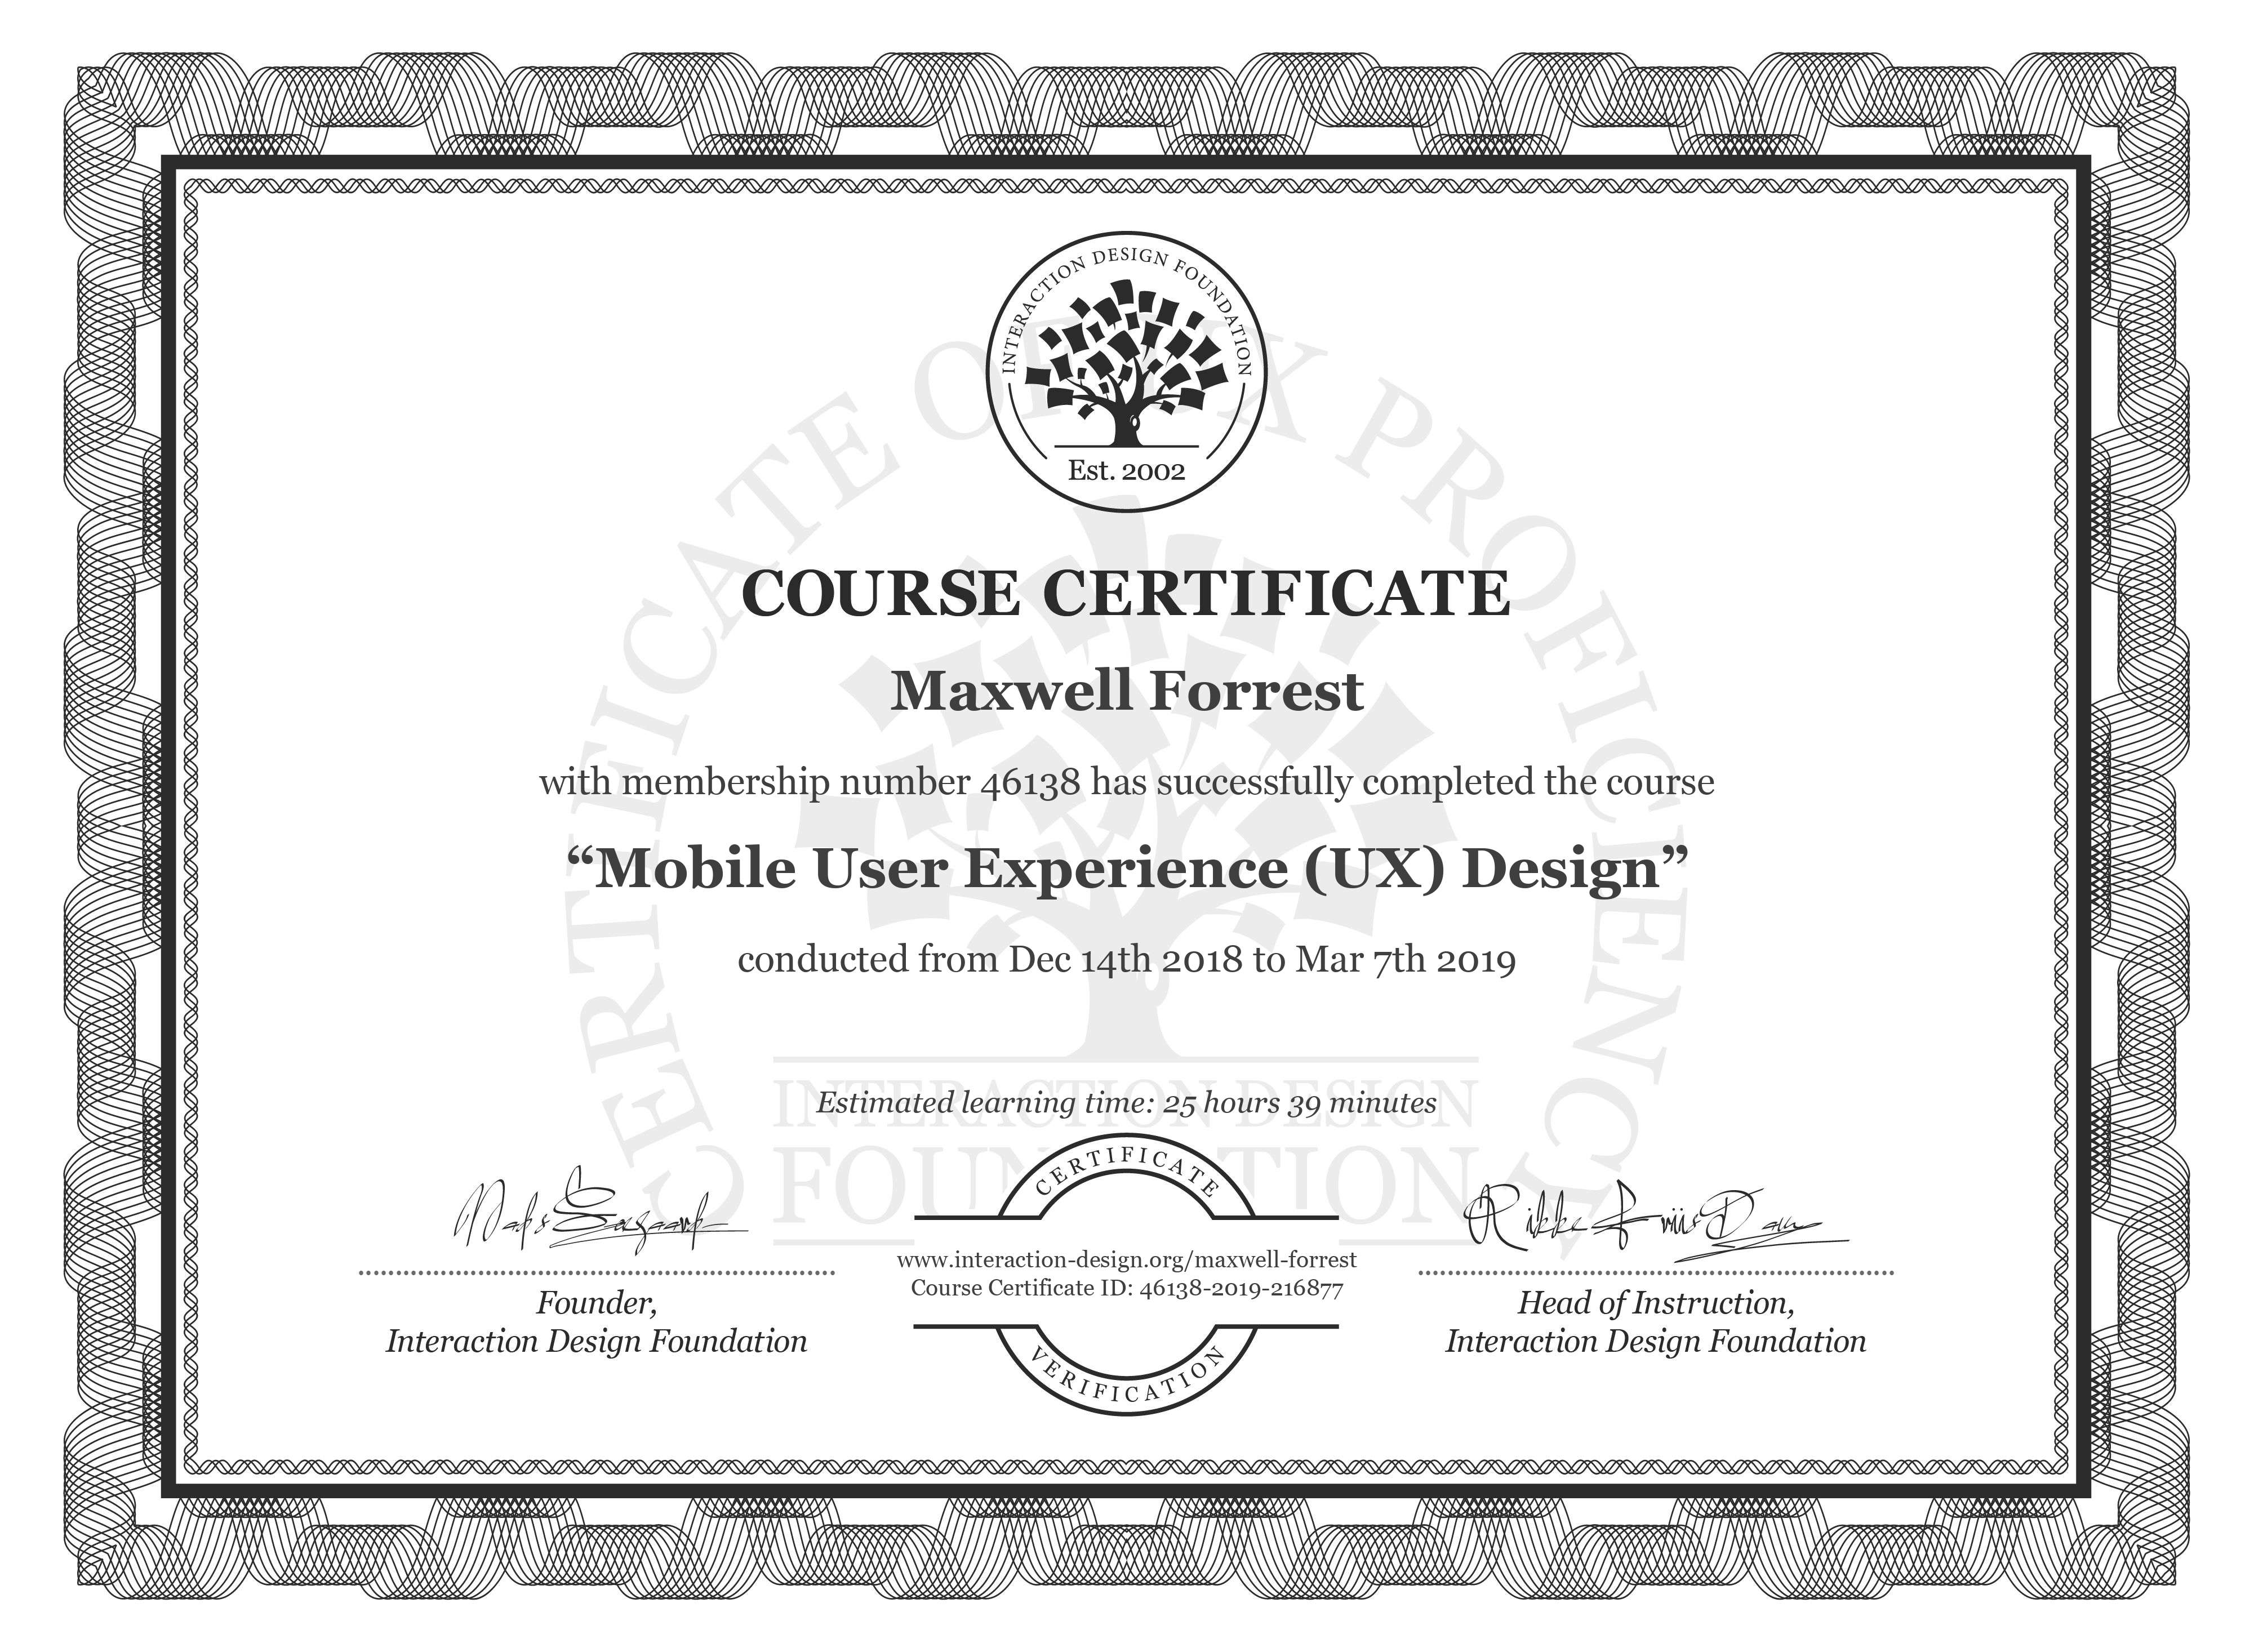 Maxwell Forrest: Course Certificate - Mobile User Experience (UX) Design